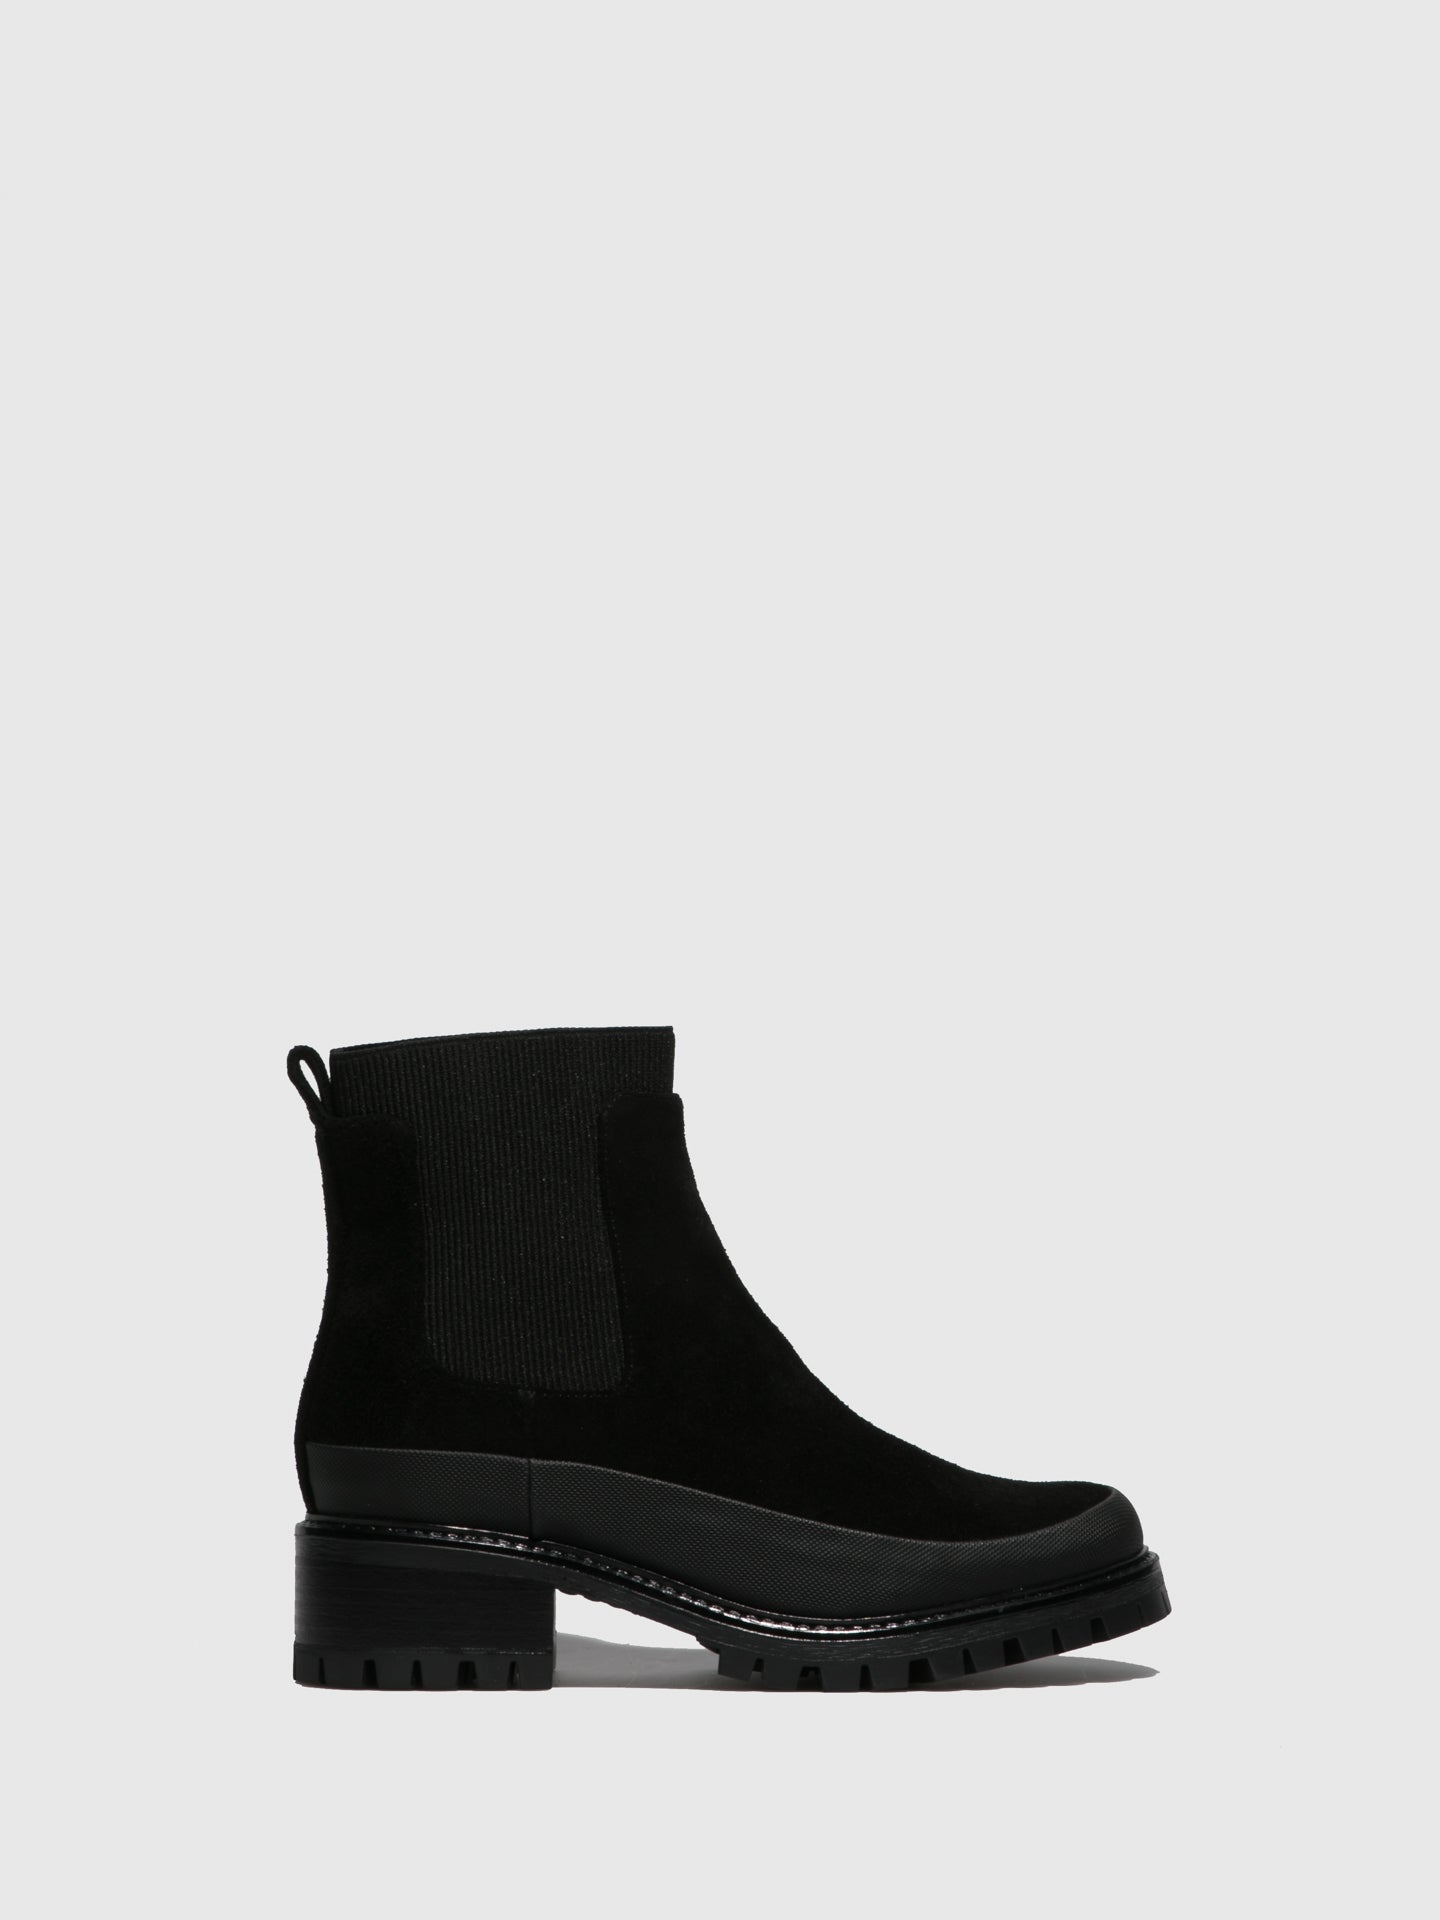 JJ Heitor Black Elasticated Ankle Boots